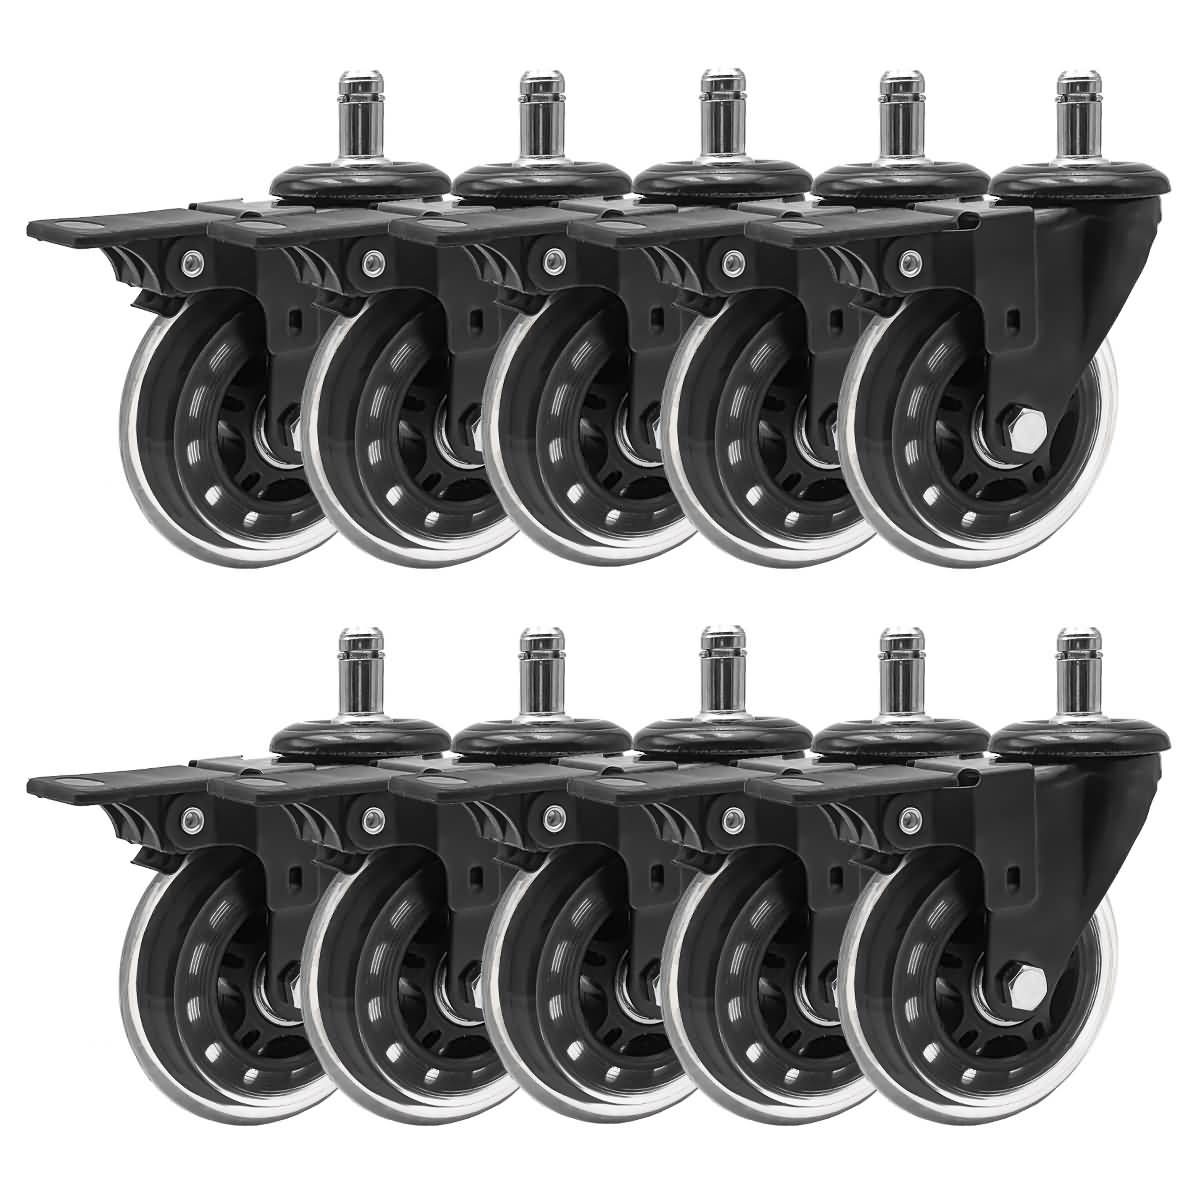 CasterBrake5011 Set of 5 with Brake 2 Replacement Office Chair or Stool Caster Wheels